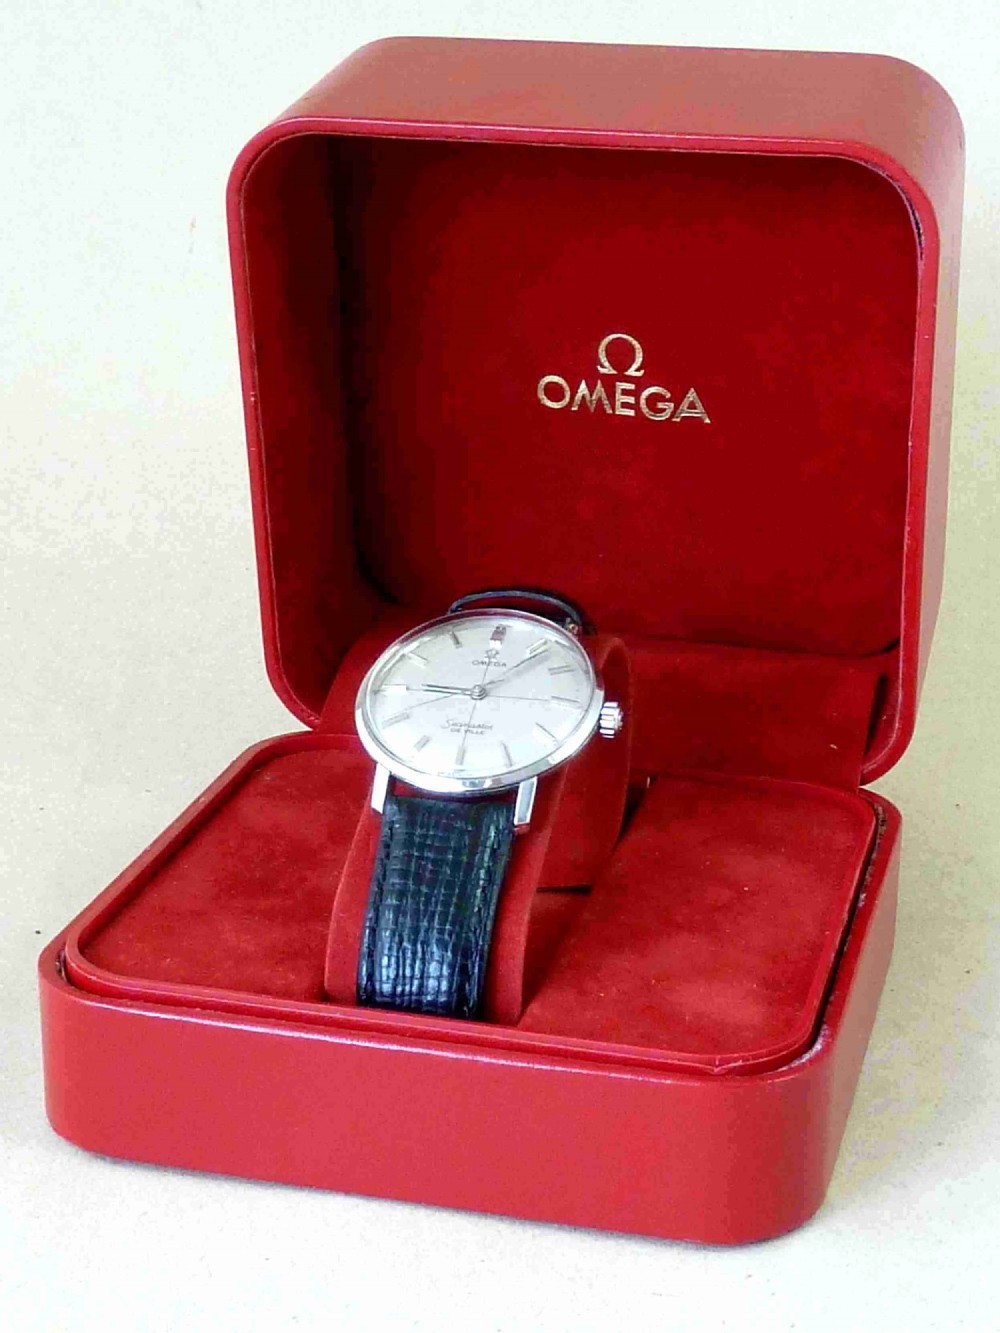 1962 omega seamaster de ville manual cross hair dial stainless steel watch boxed